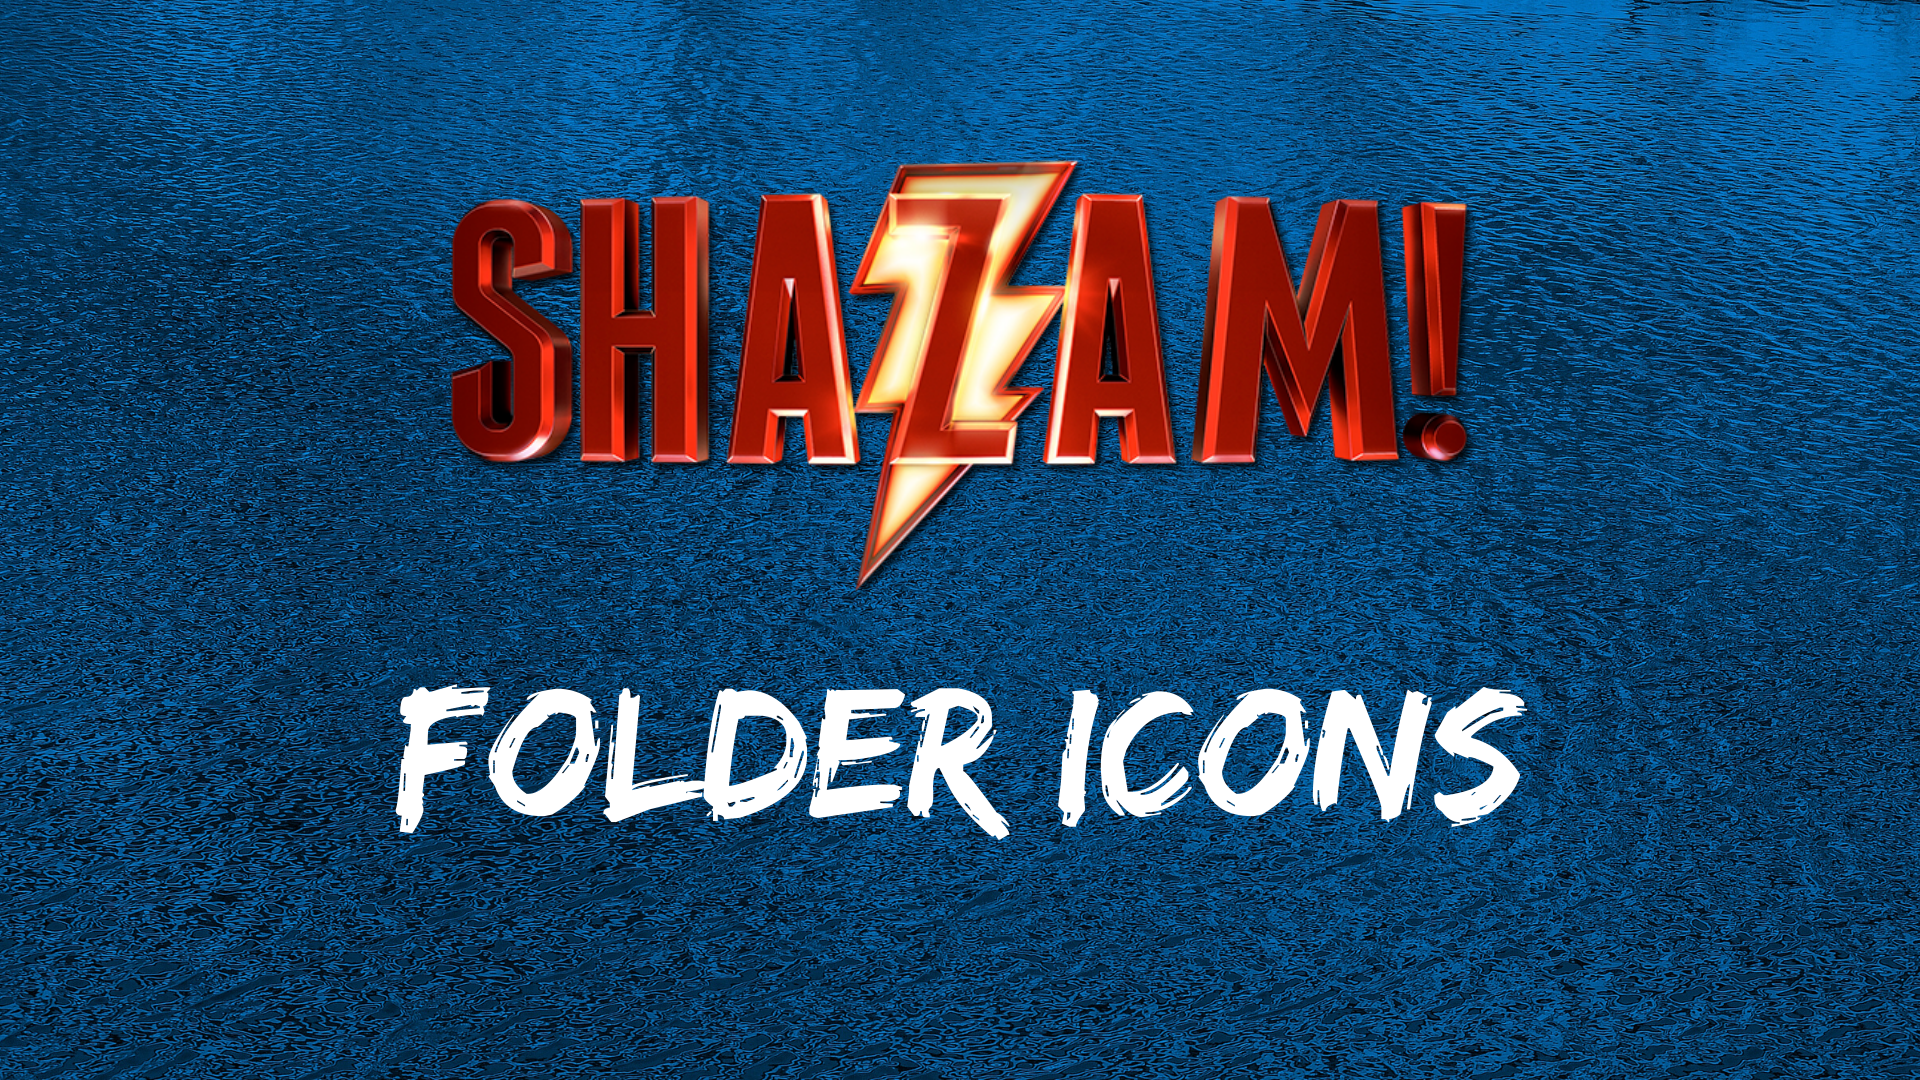 Shazam! Movie Folder Icons